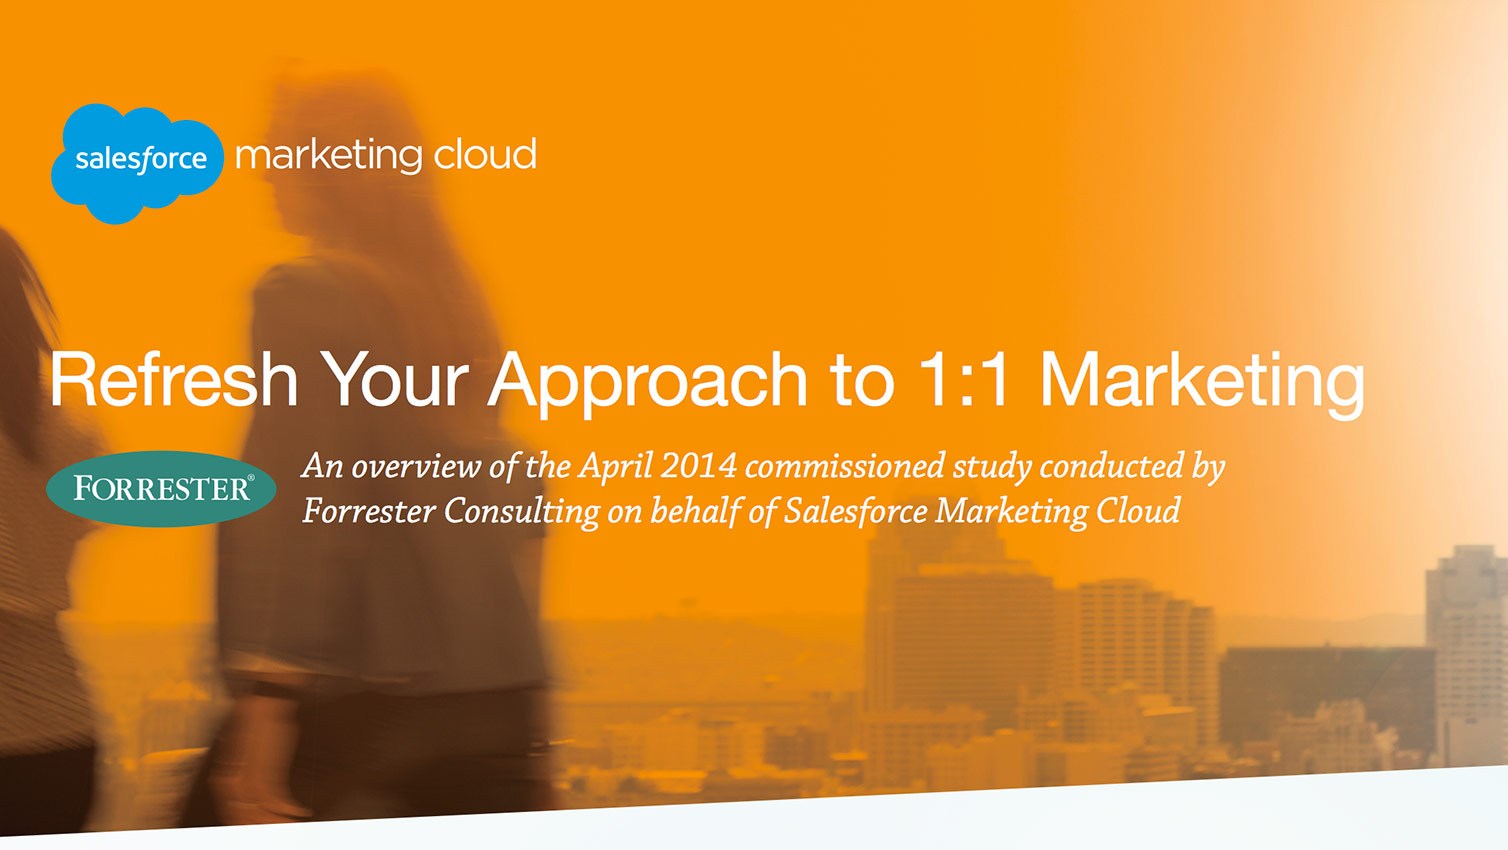 Refresh Your Approach to 1:1 Marketing with Forrester Consulting #Infographic